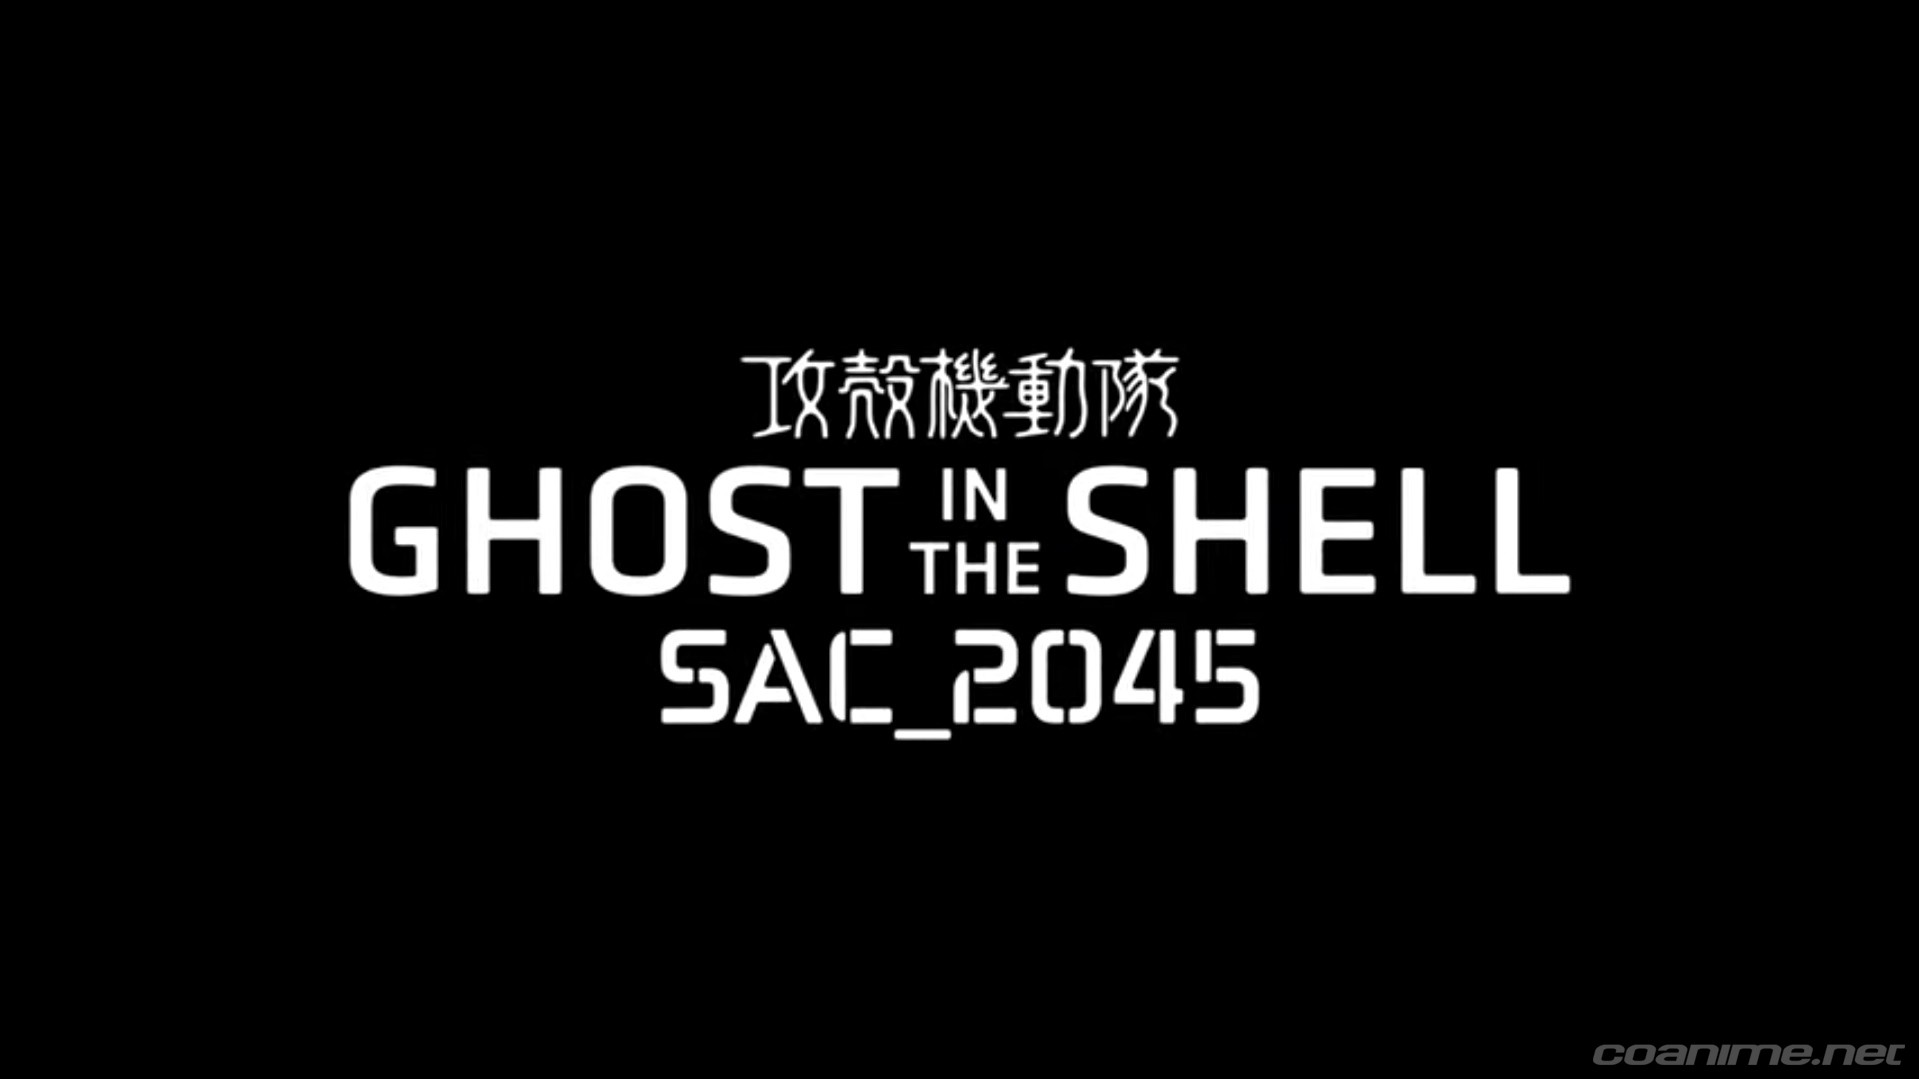 Revelan trailer del nuevo anime Ghost in the Shell: SAC_2045, se estrenara en Primavera del 2020 - Coanime